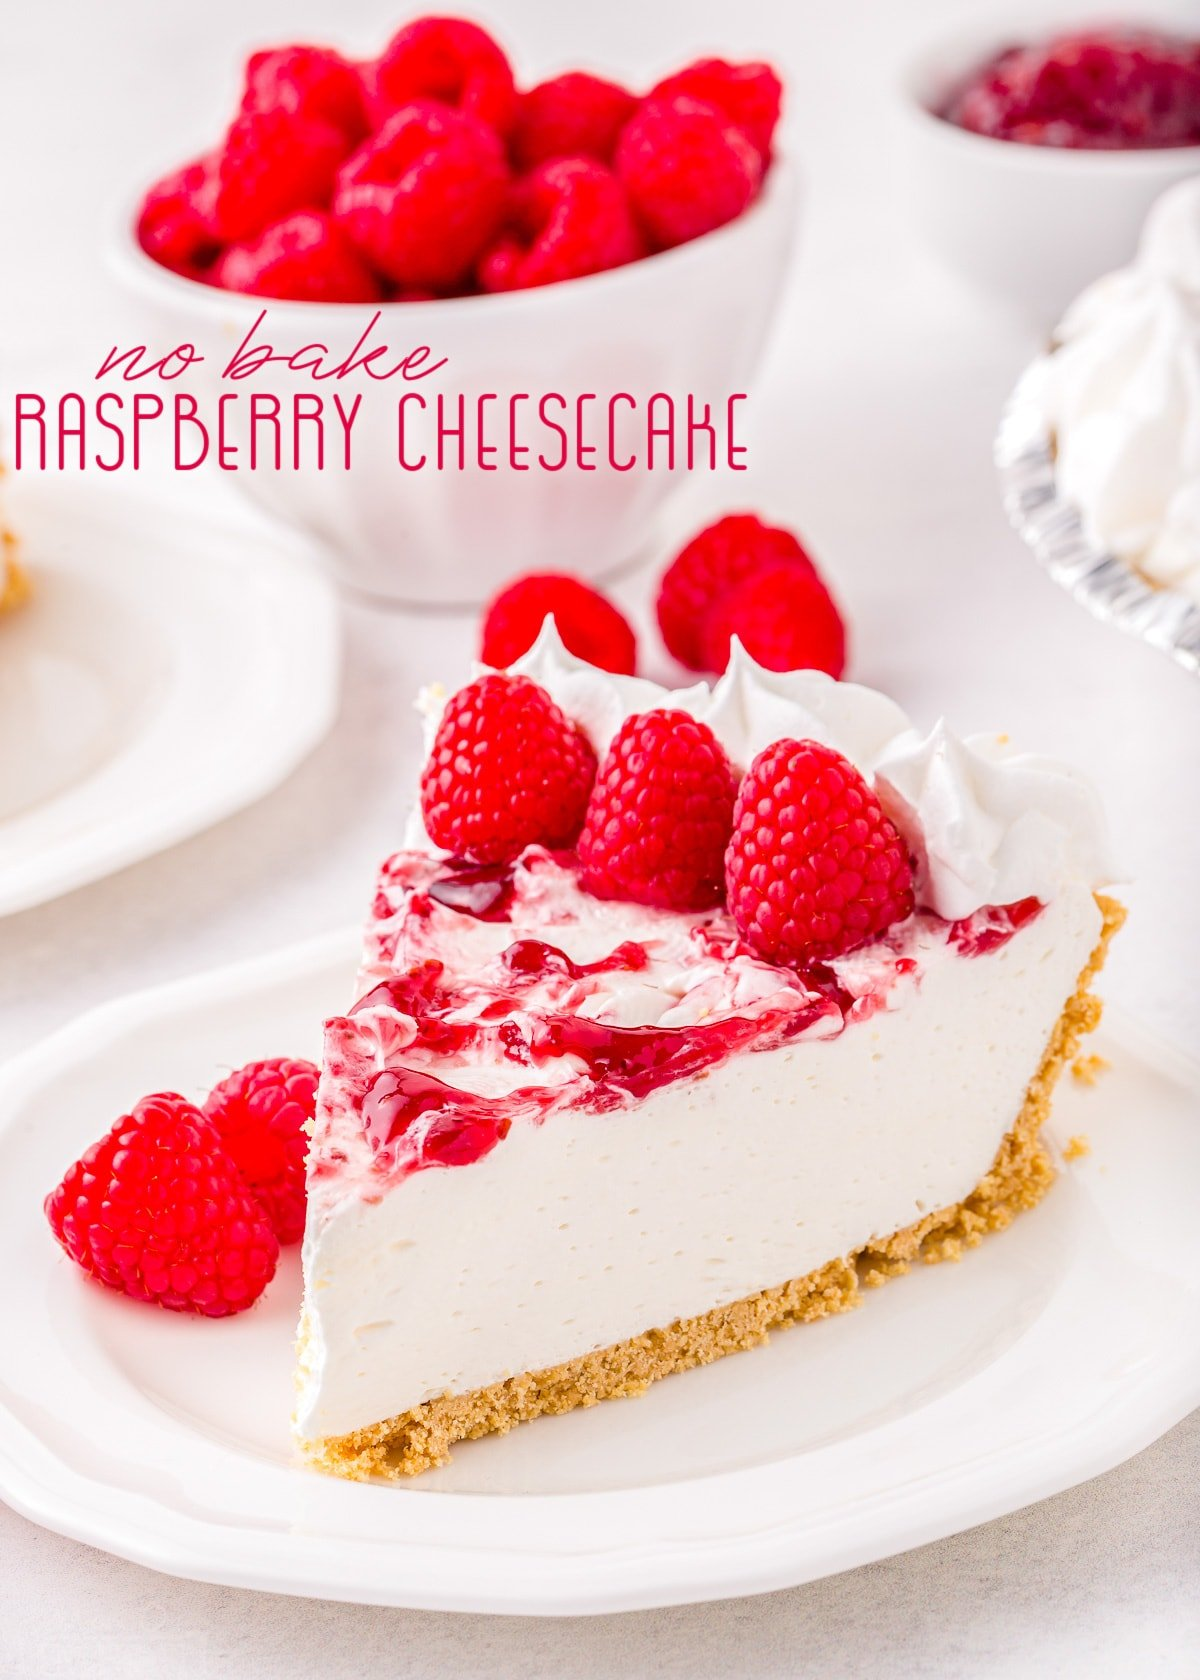 piece of cheesecake on plate garnished with fresh raspberries with title overlay.